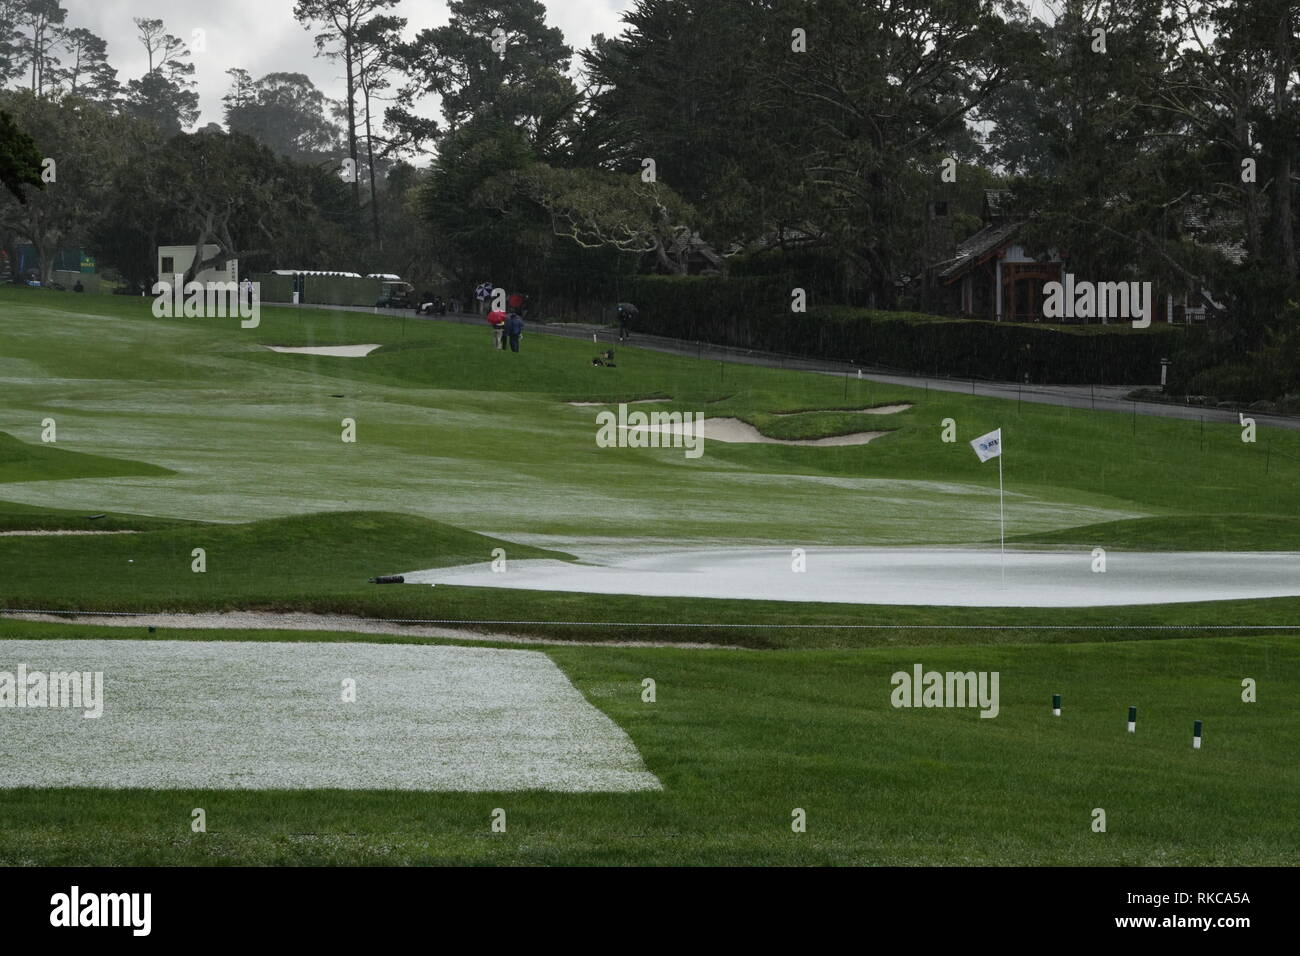 Pebble Beach Golf Links, California, USA. 10th Feb 2019.   Hail stops play during the final round at Pebble Beach Golf Course at  the AT&T Pro-Am at Pebble Beach (here the 15th hole looks like a ski slope) Credit: Motofoto/Alamy Live News Stock Photo